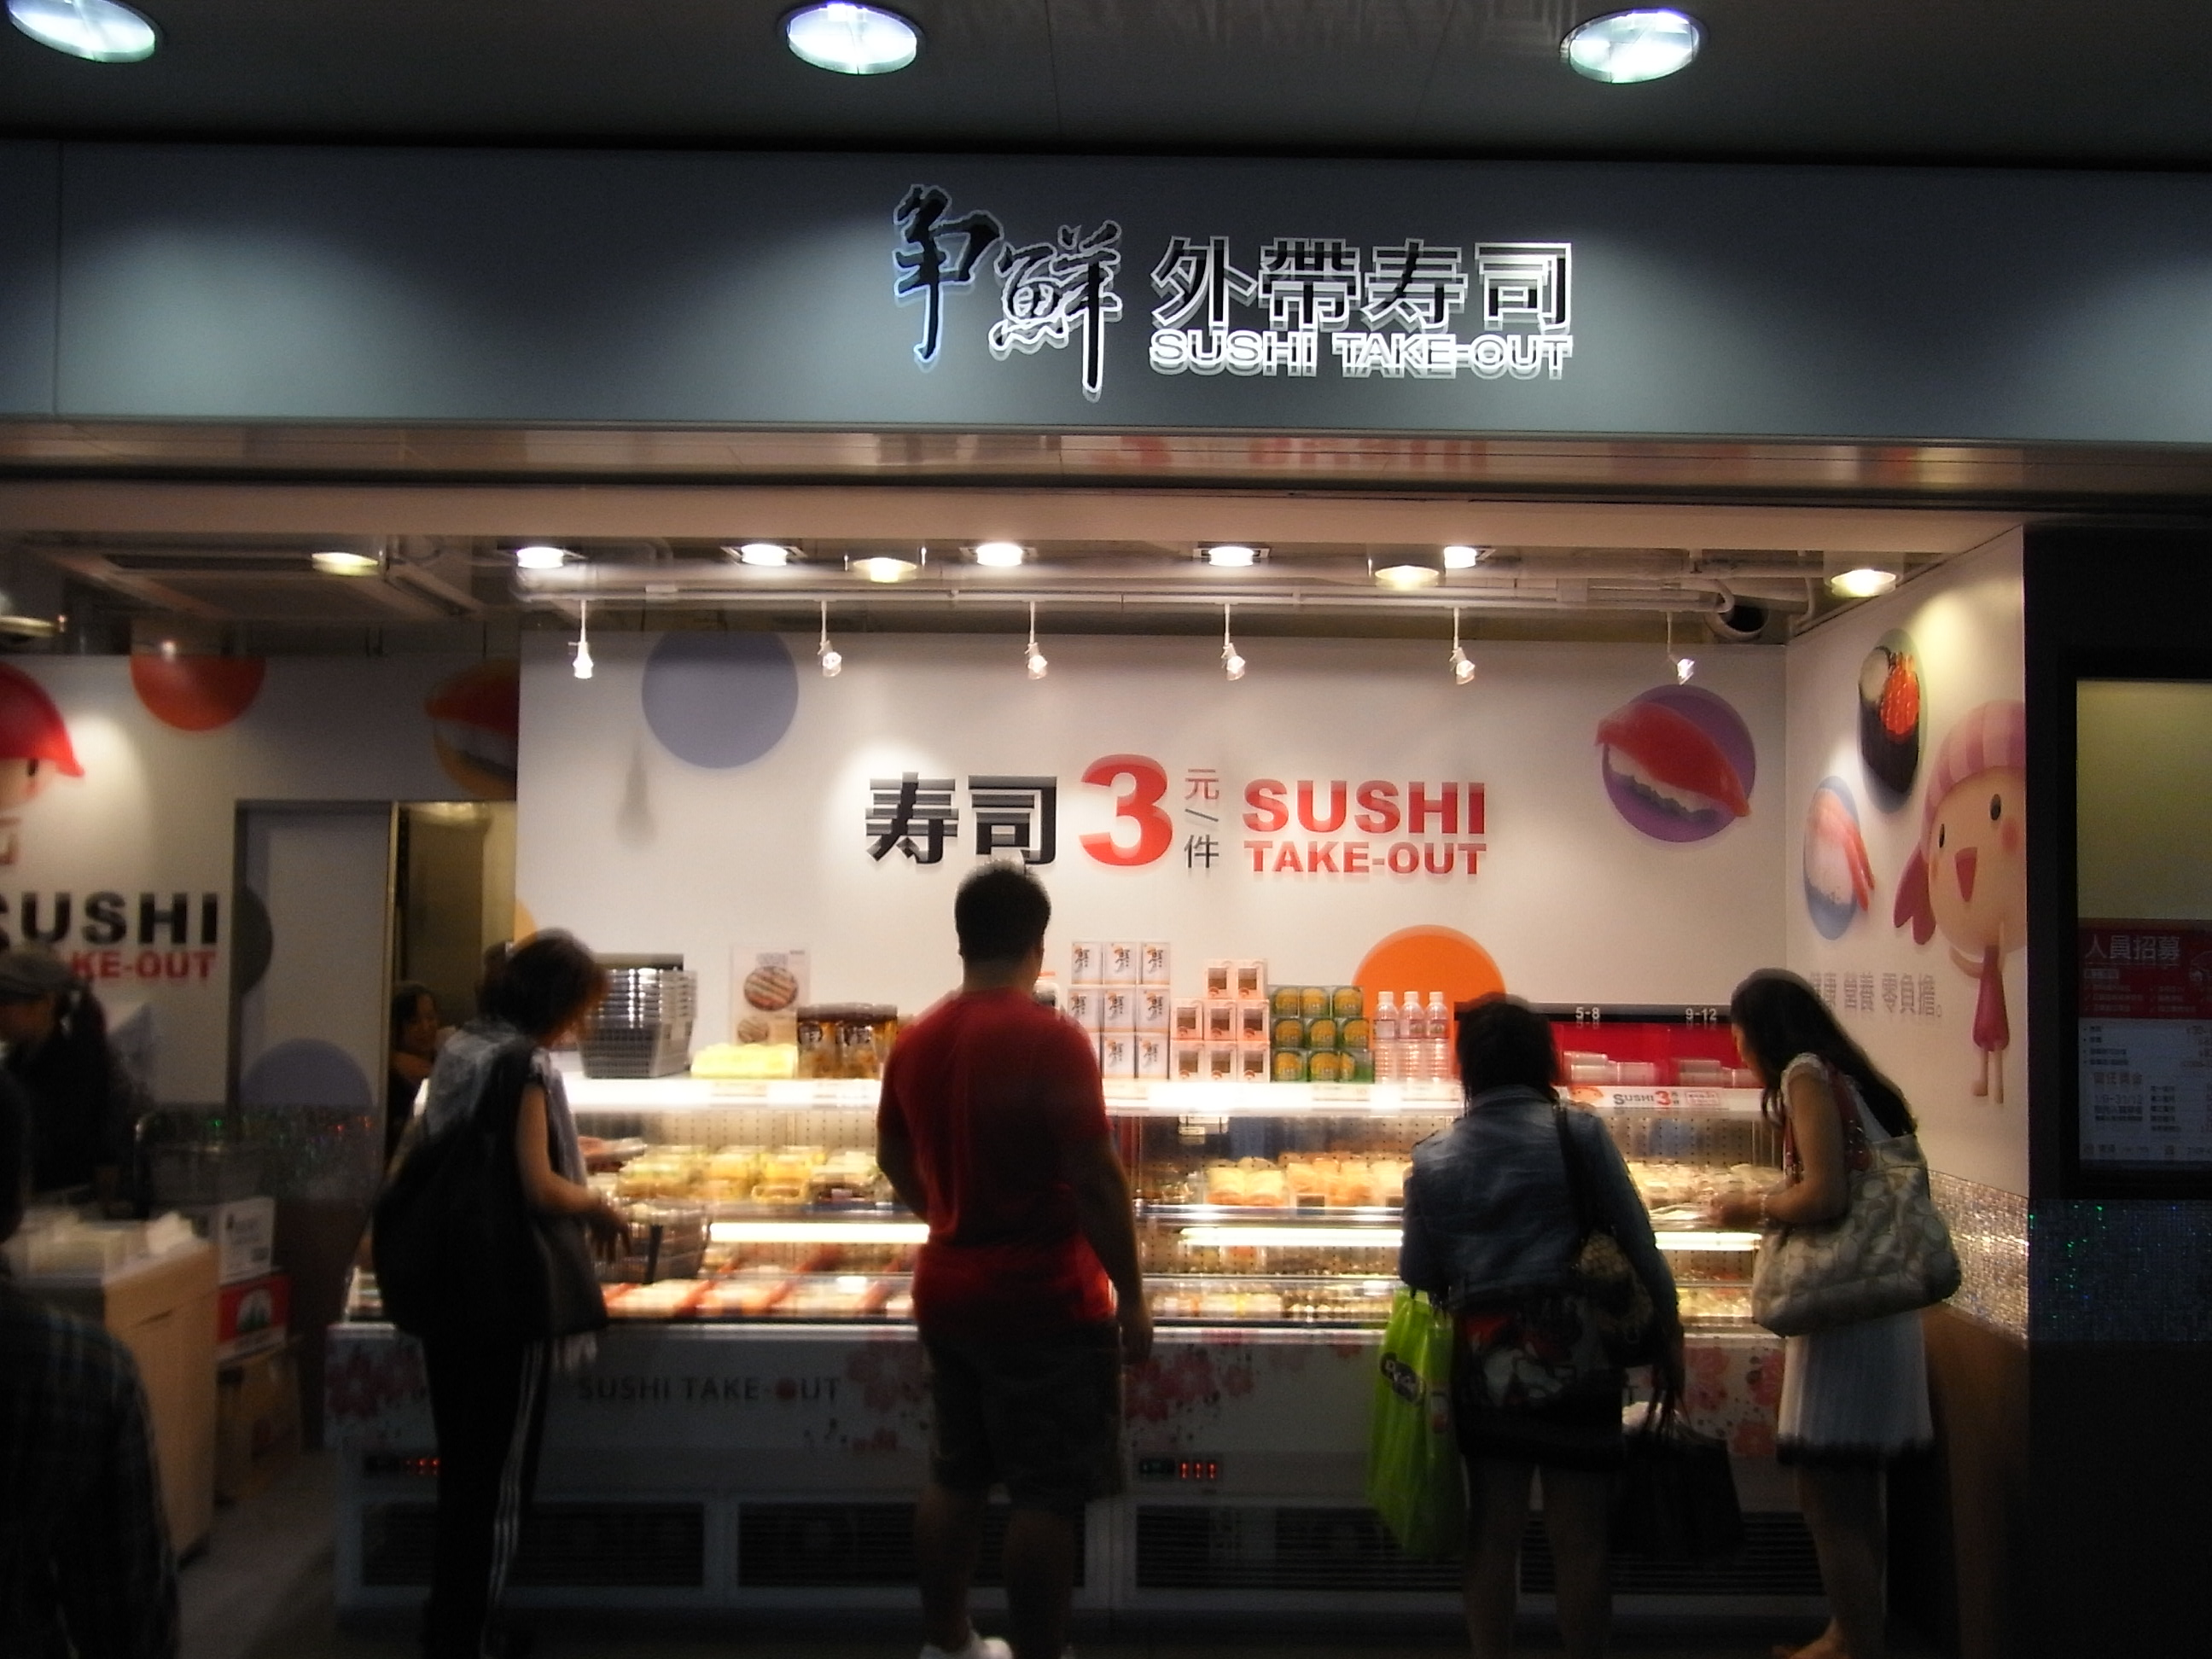 Description hk tung chung station shop sushi take out oct 2012 jpg